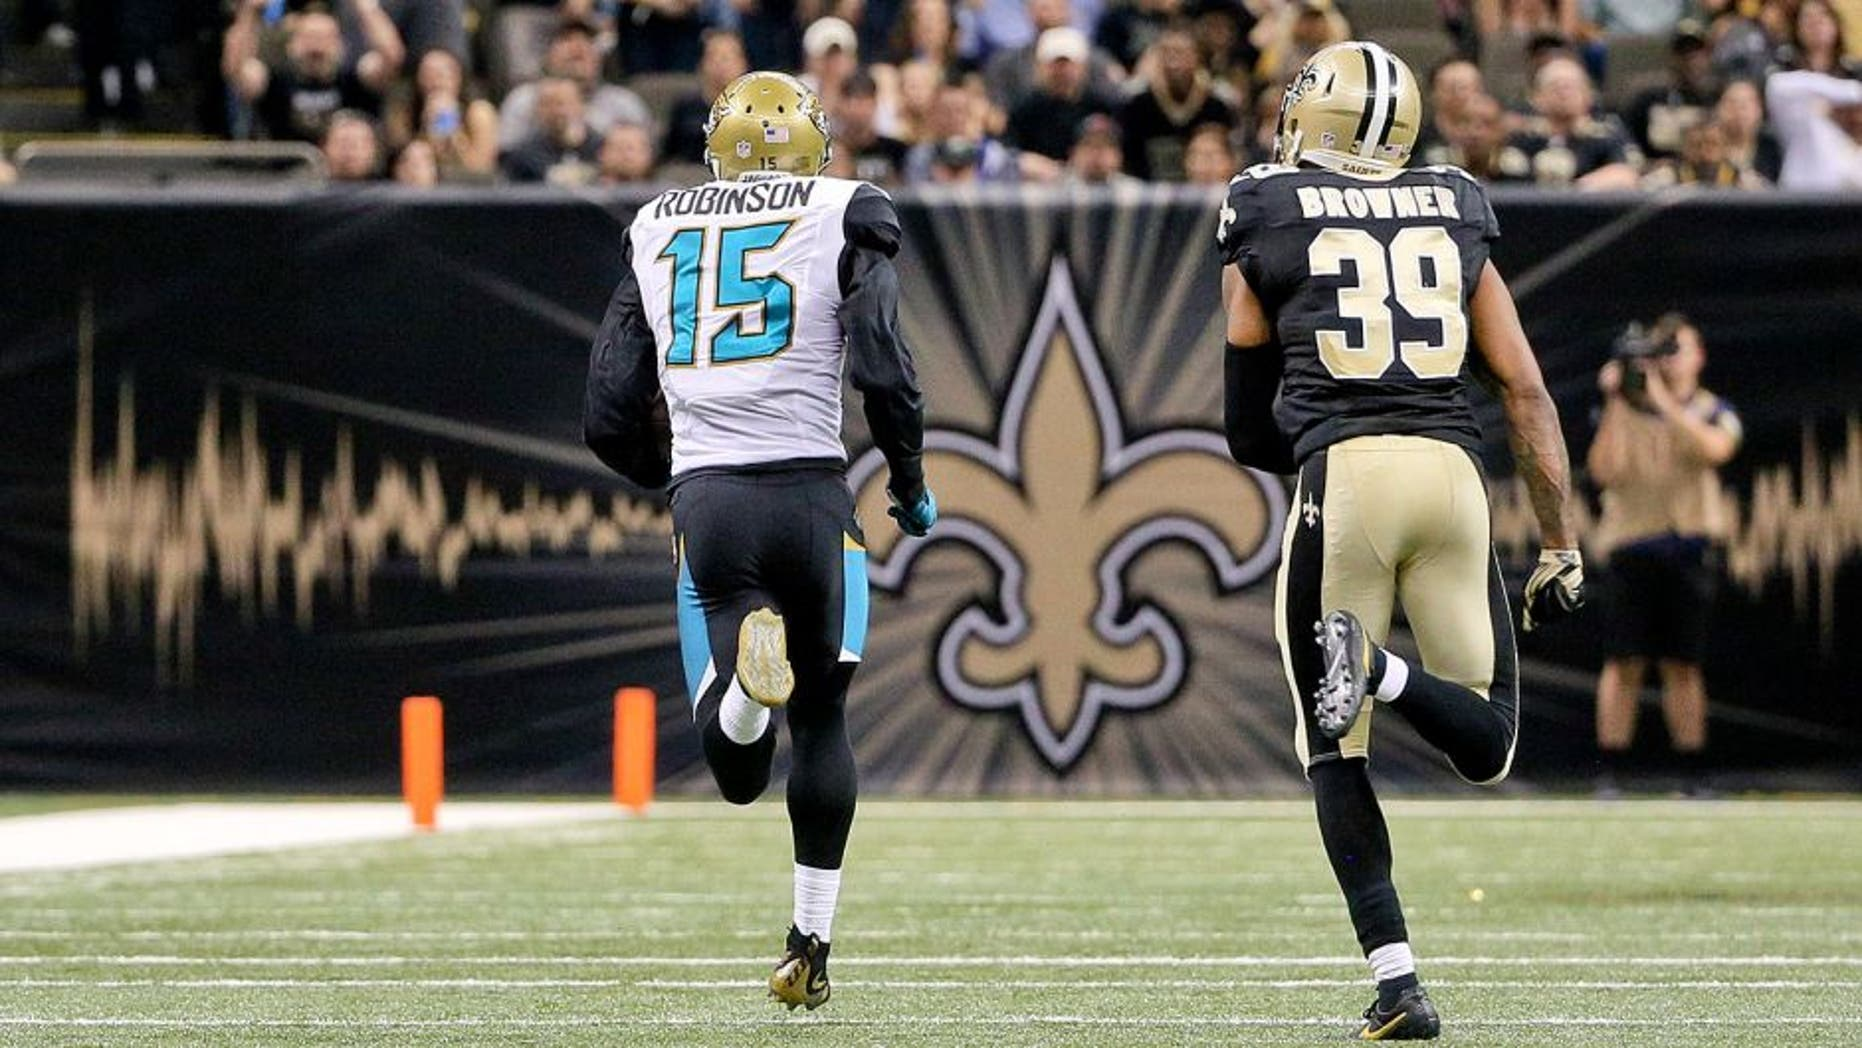 Dec 27, 2015; New Orleans, LA, USA; Jacksonville Jaguars wide receiver Allen Robinson (15) catches a touchdown over New Orleans Saints cornerback Brandon Browner (39) during the second half of a game at the Mercedes-Benz Superdome. The Saints defeated the Jaguars 38-27. Mandatory Credit: Derick E. Hingle-USA TODAY Sports